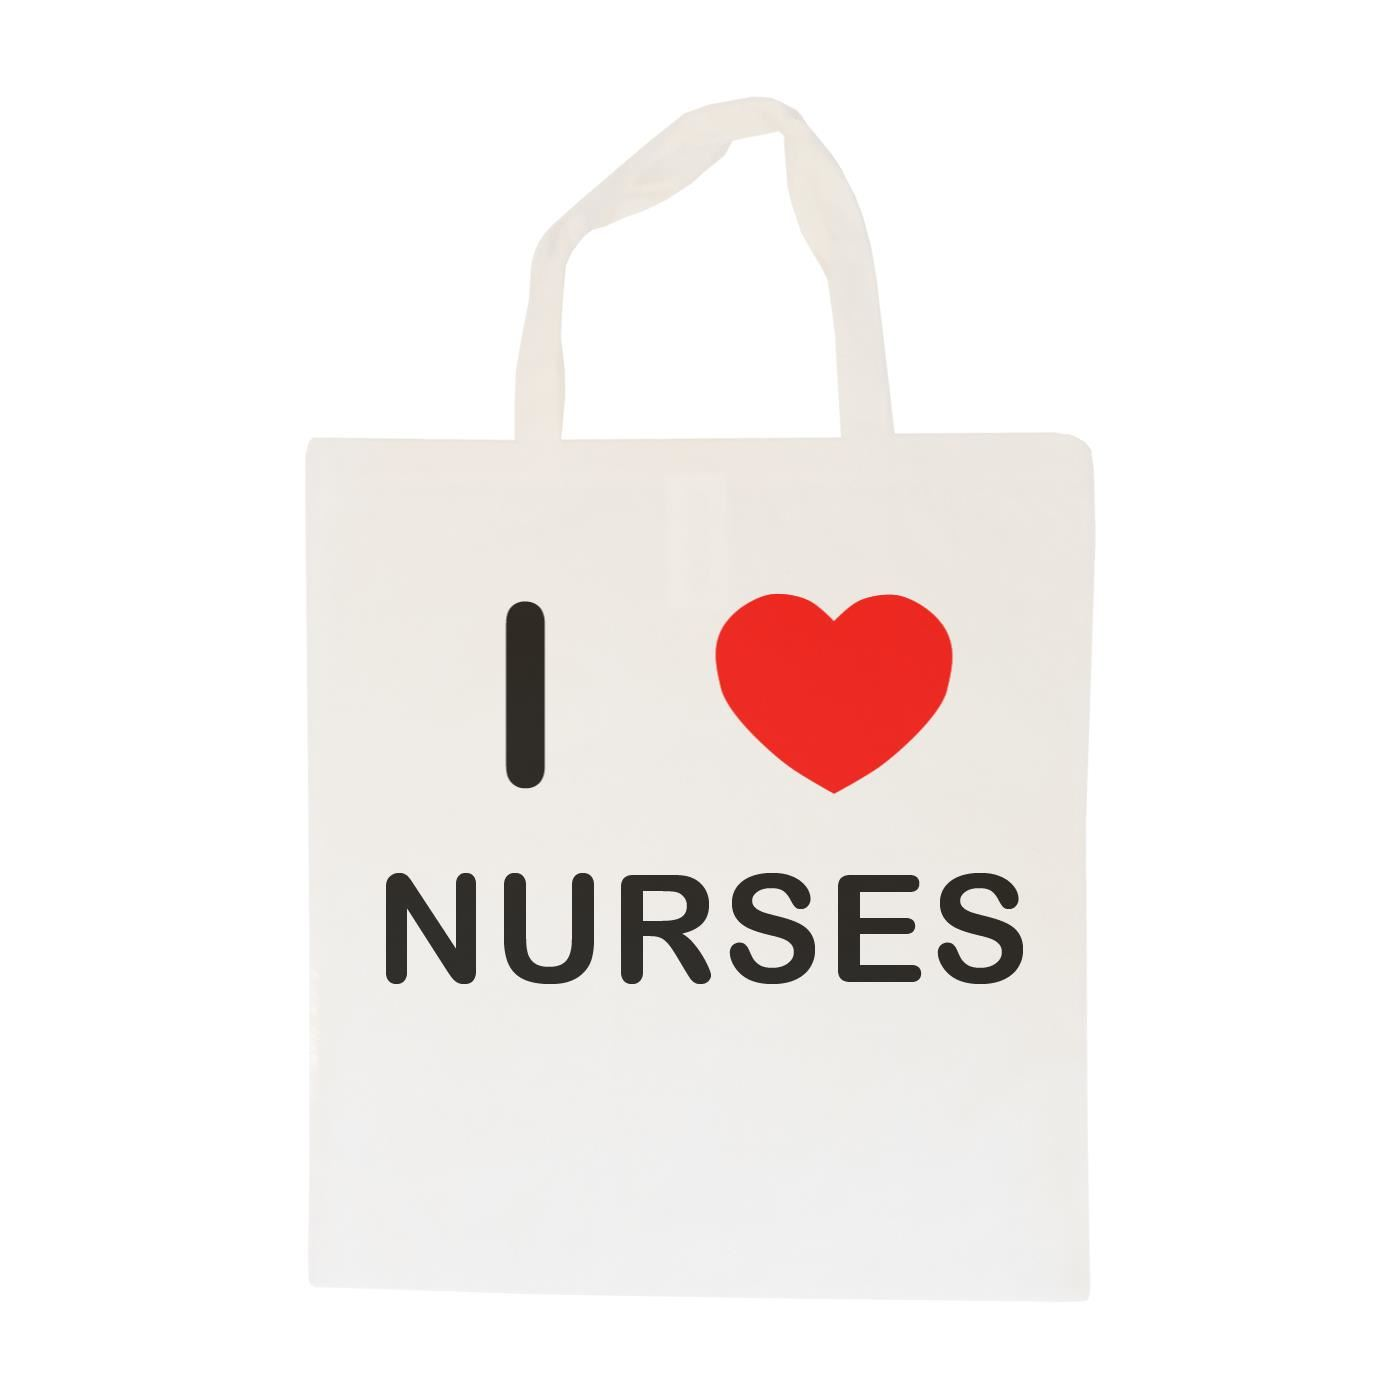 I Love Nurses - Cotton Bag | Size choice Tote, Shopper or Sling